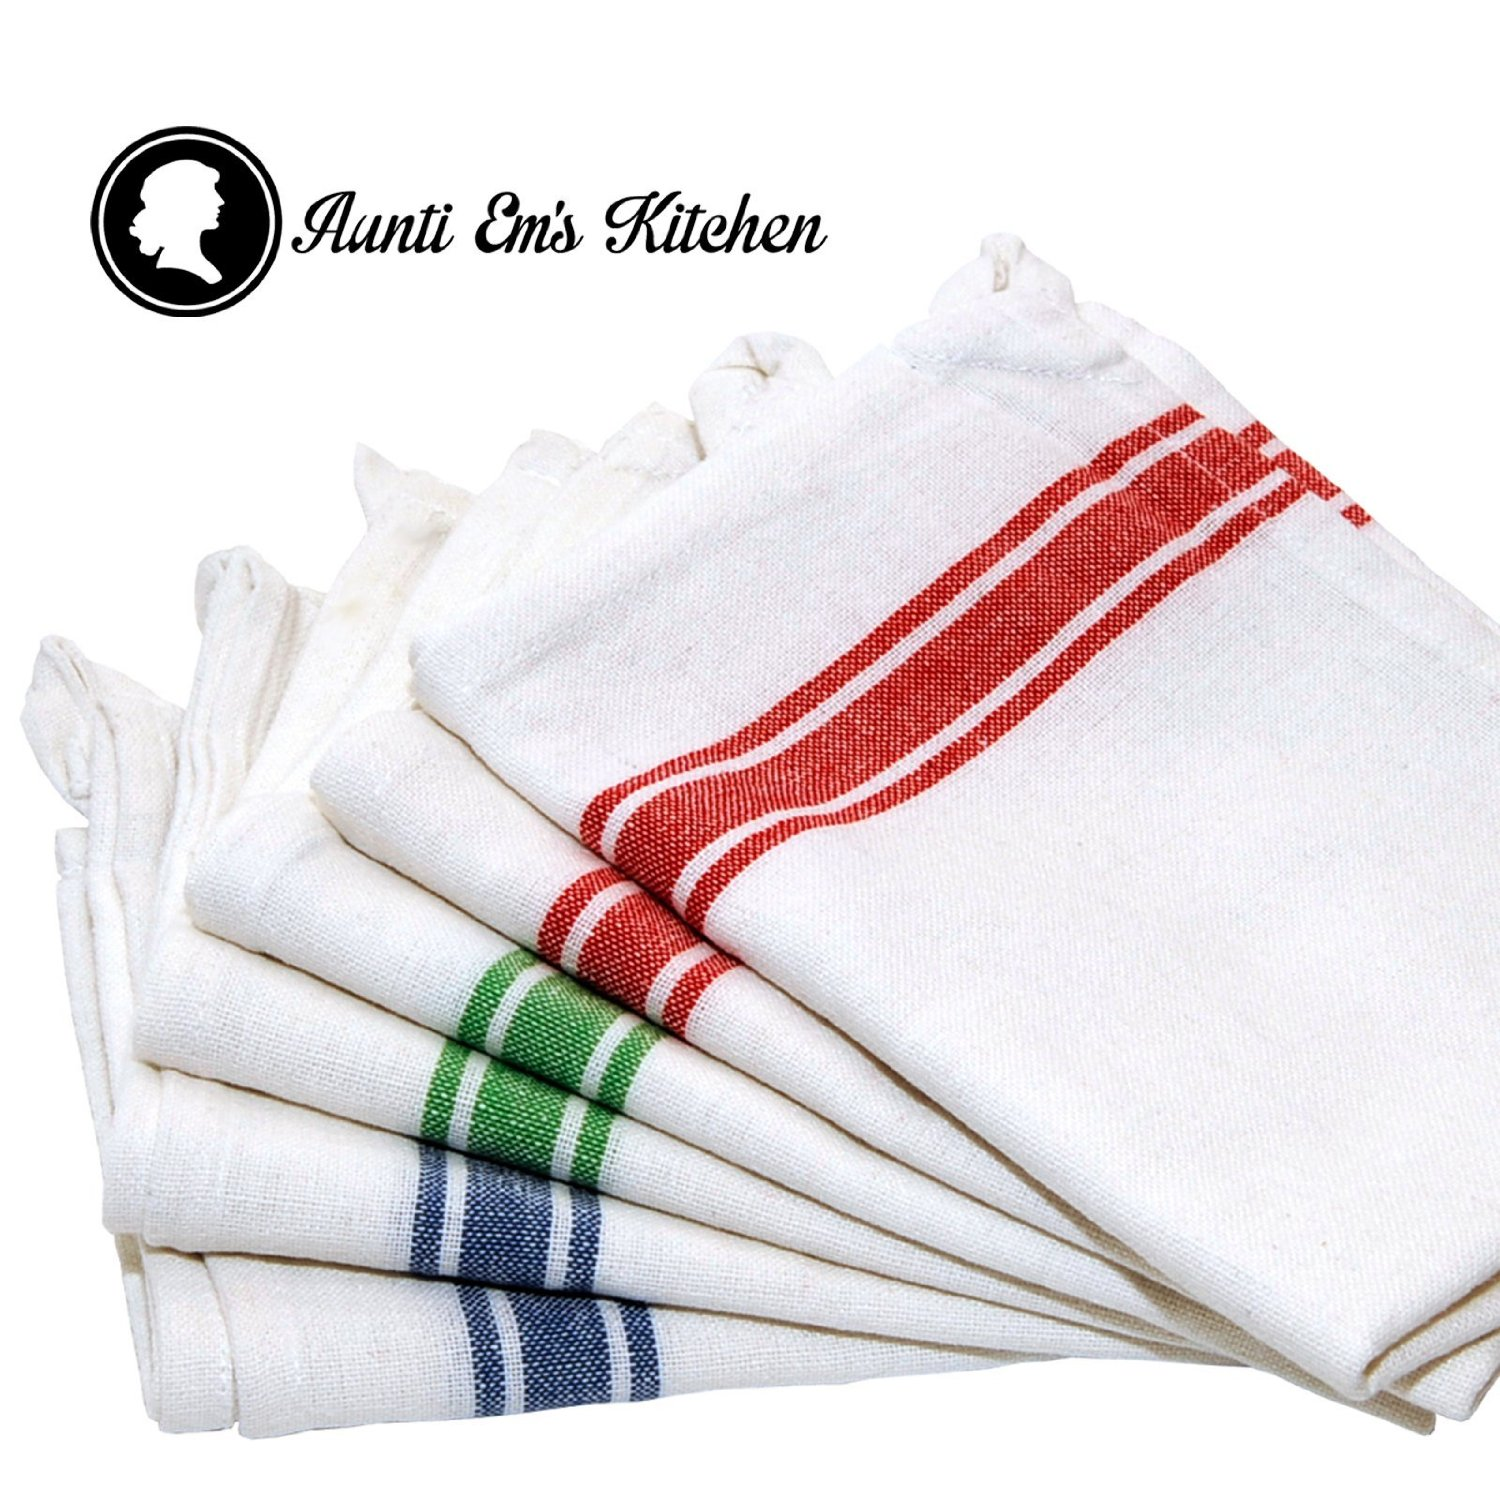 Top 10 Best Dish Clothes & Dish Towels 2020 Review